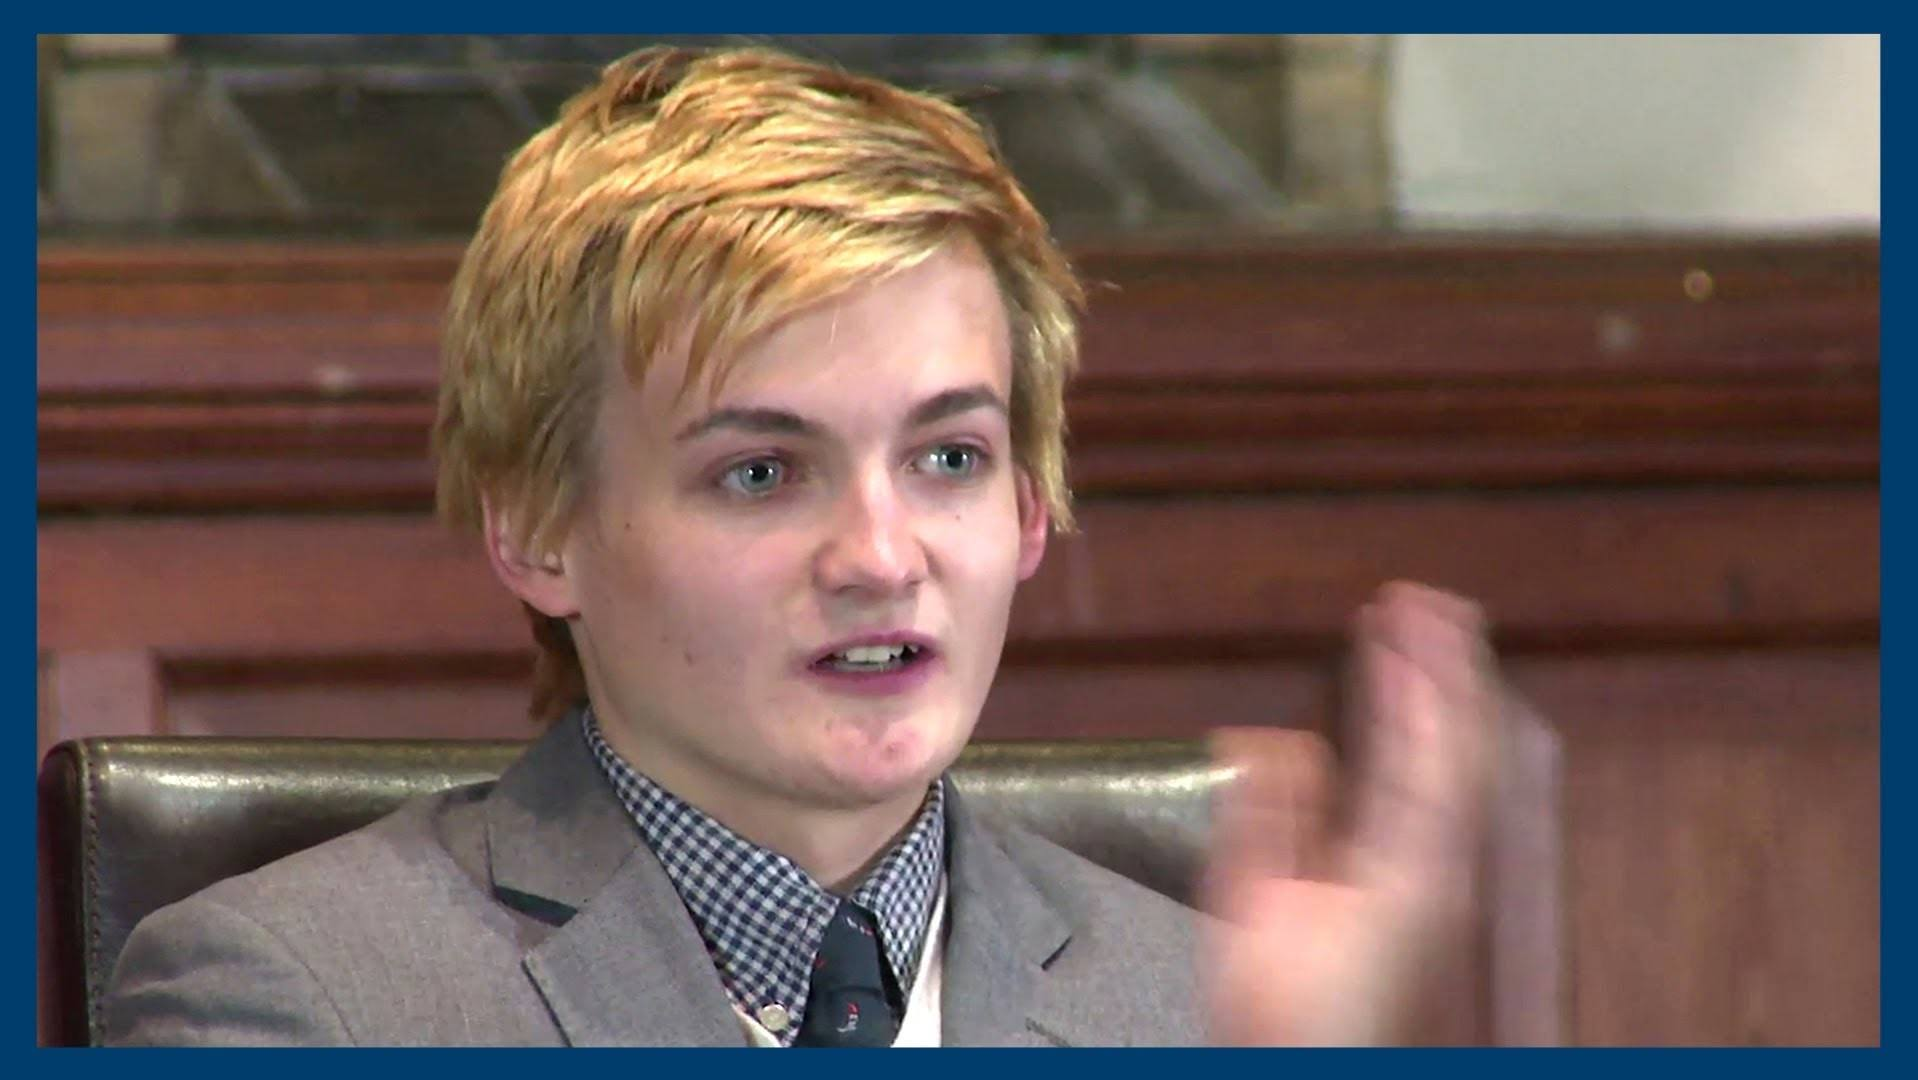 Jack Gleeson Explains Why He Hates Celebrity Culture